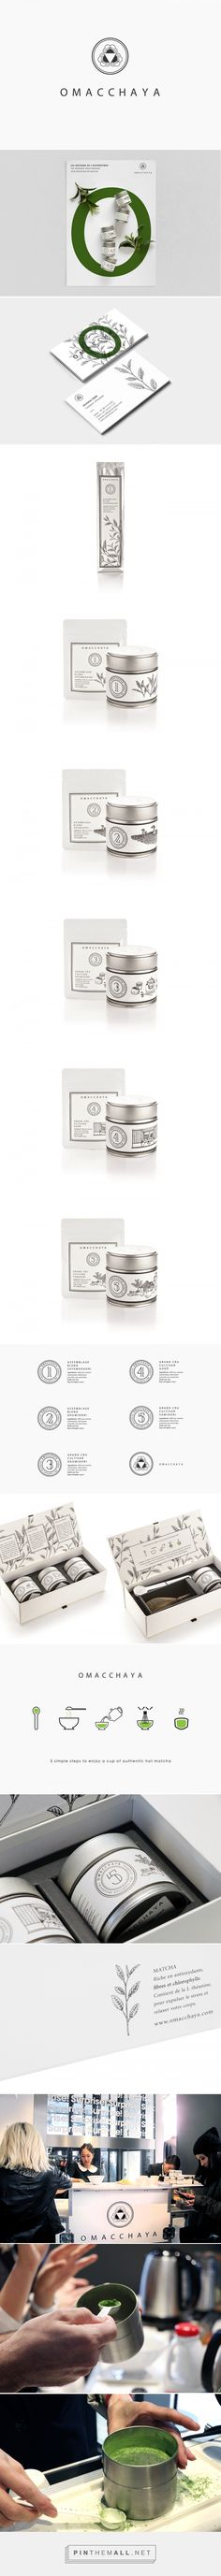 OMACCHAYA Tea Branding and Packaging by Lee Ching Tat | Fivestar Branding Agency – Design and Branding Agency & Curated Inspiration Gallery